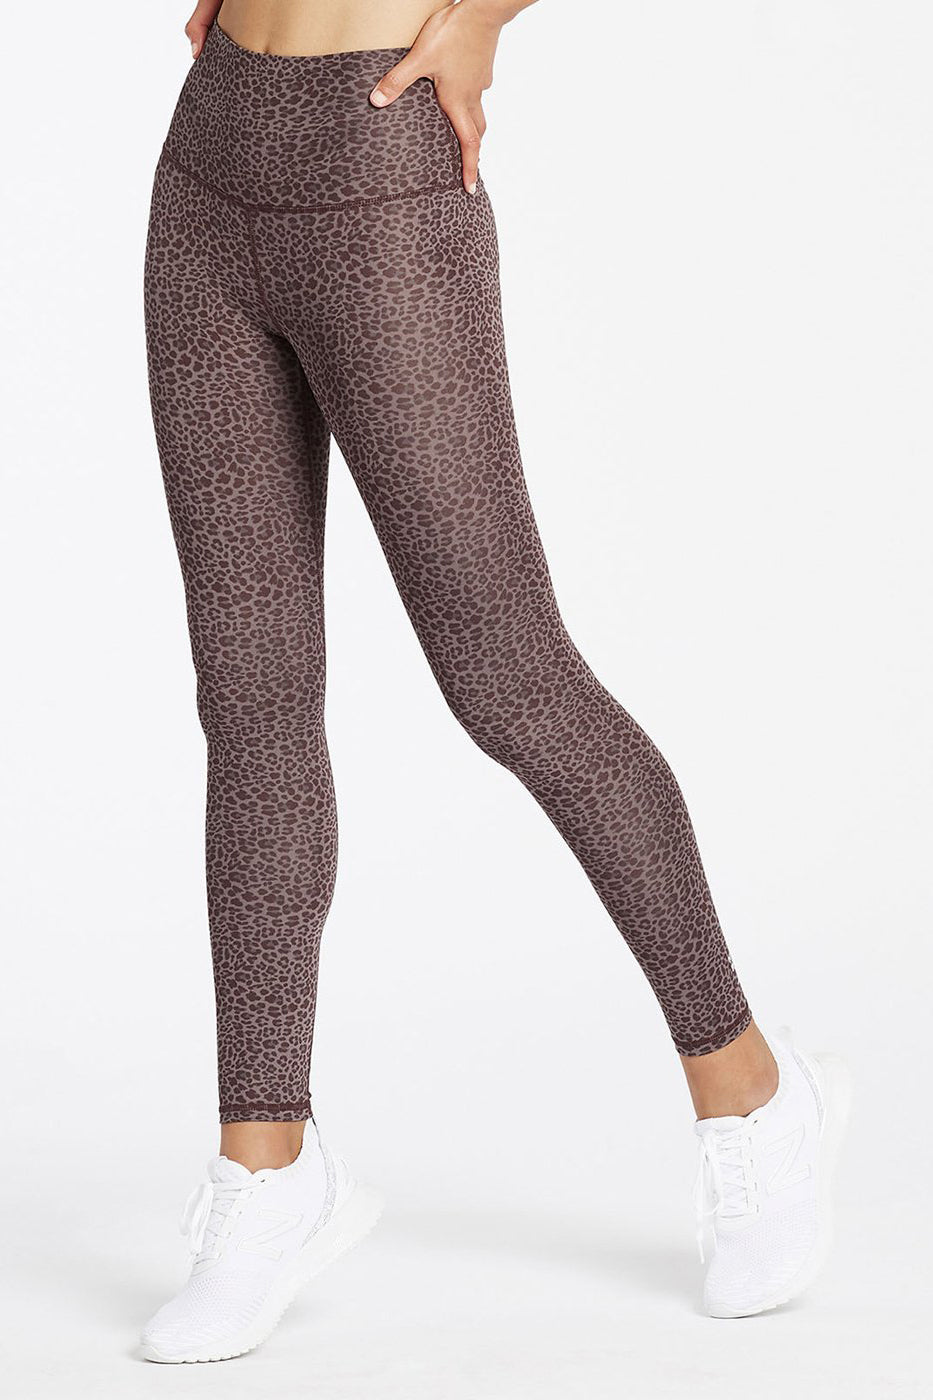 High Rise Long Legging II - Plum Cheetah